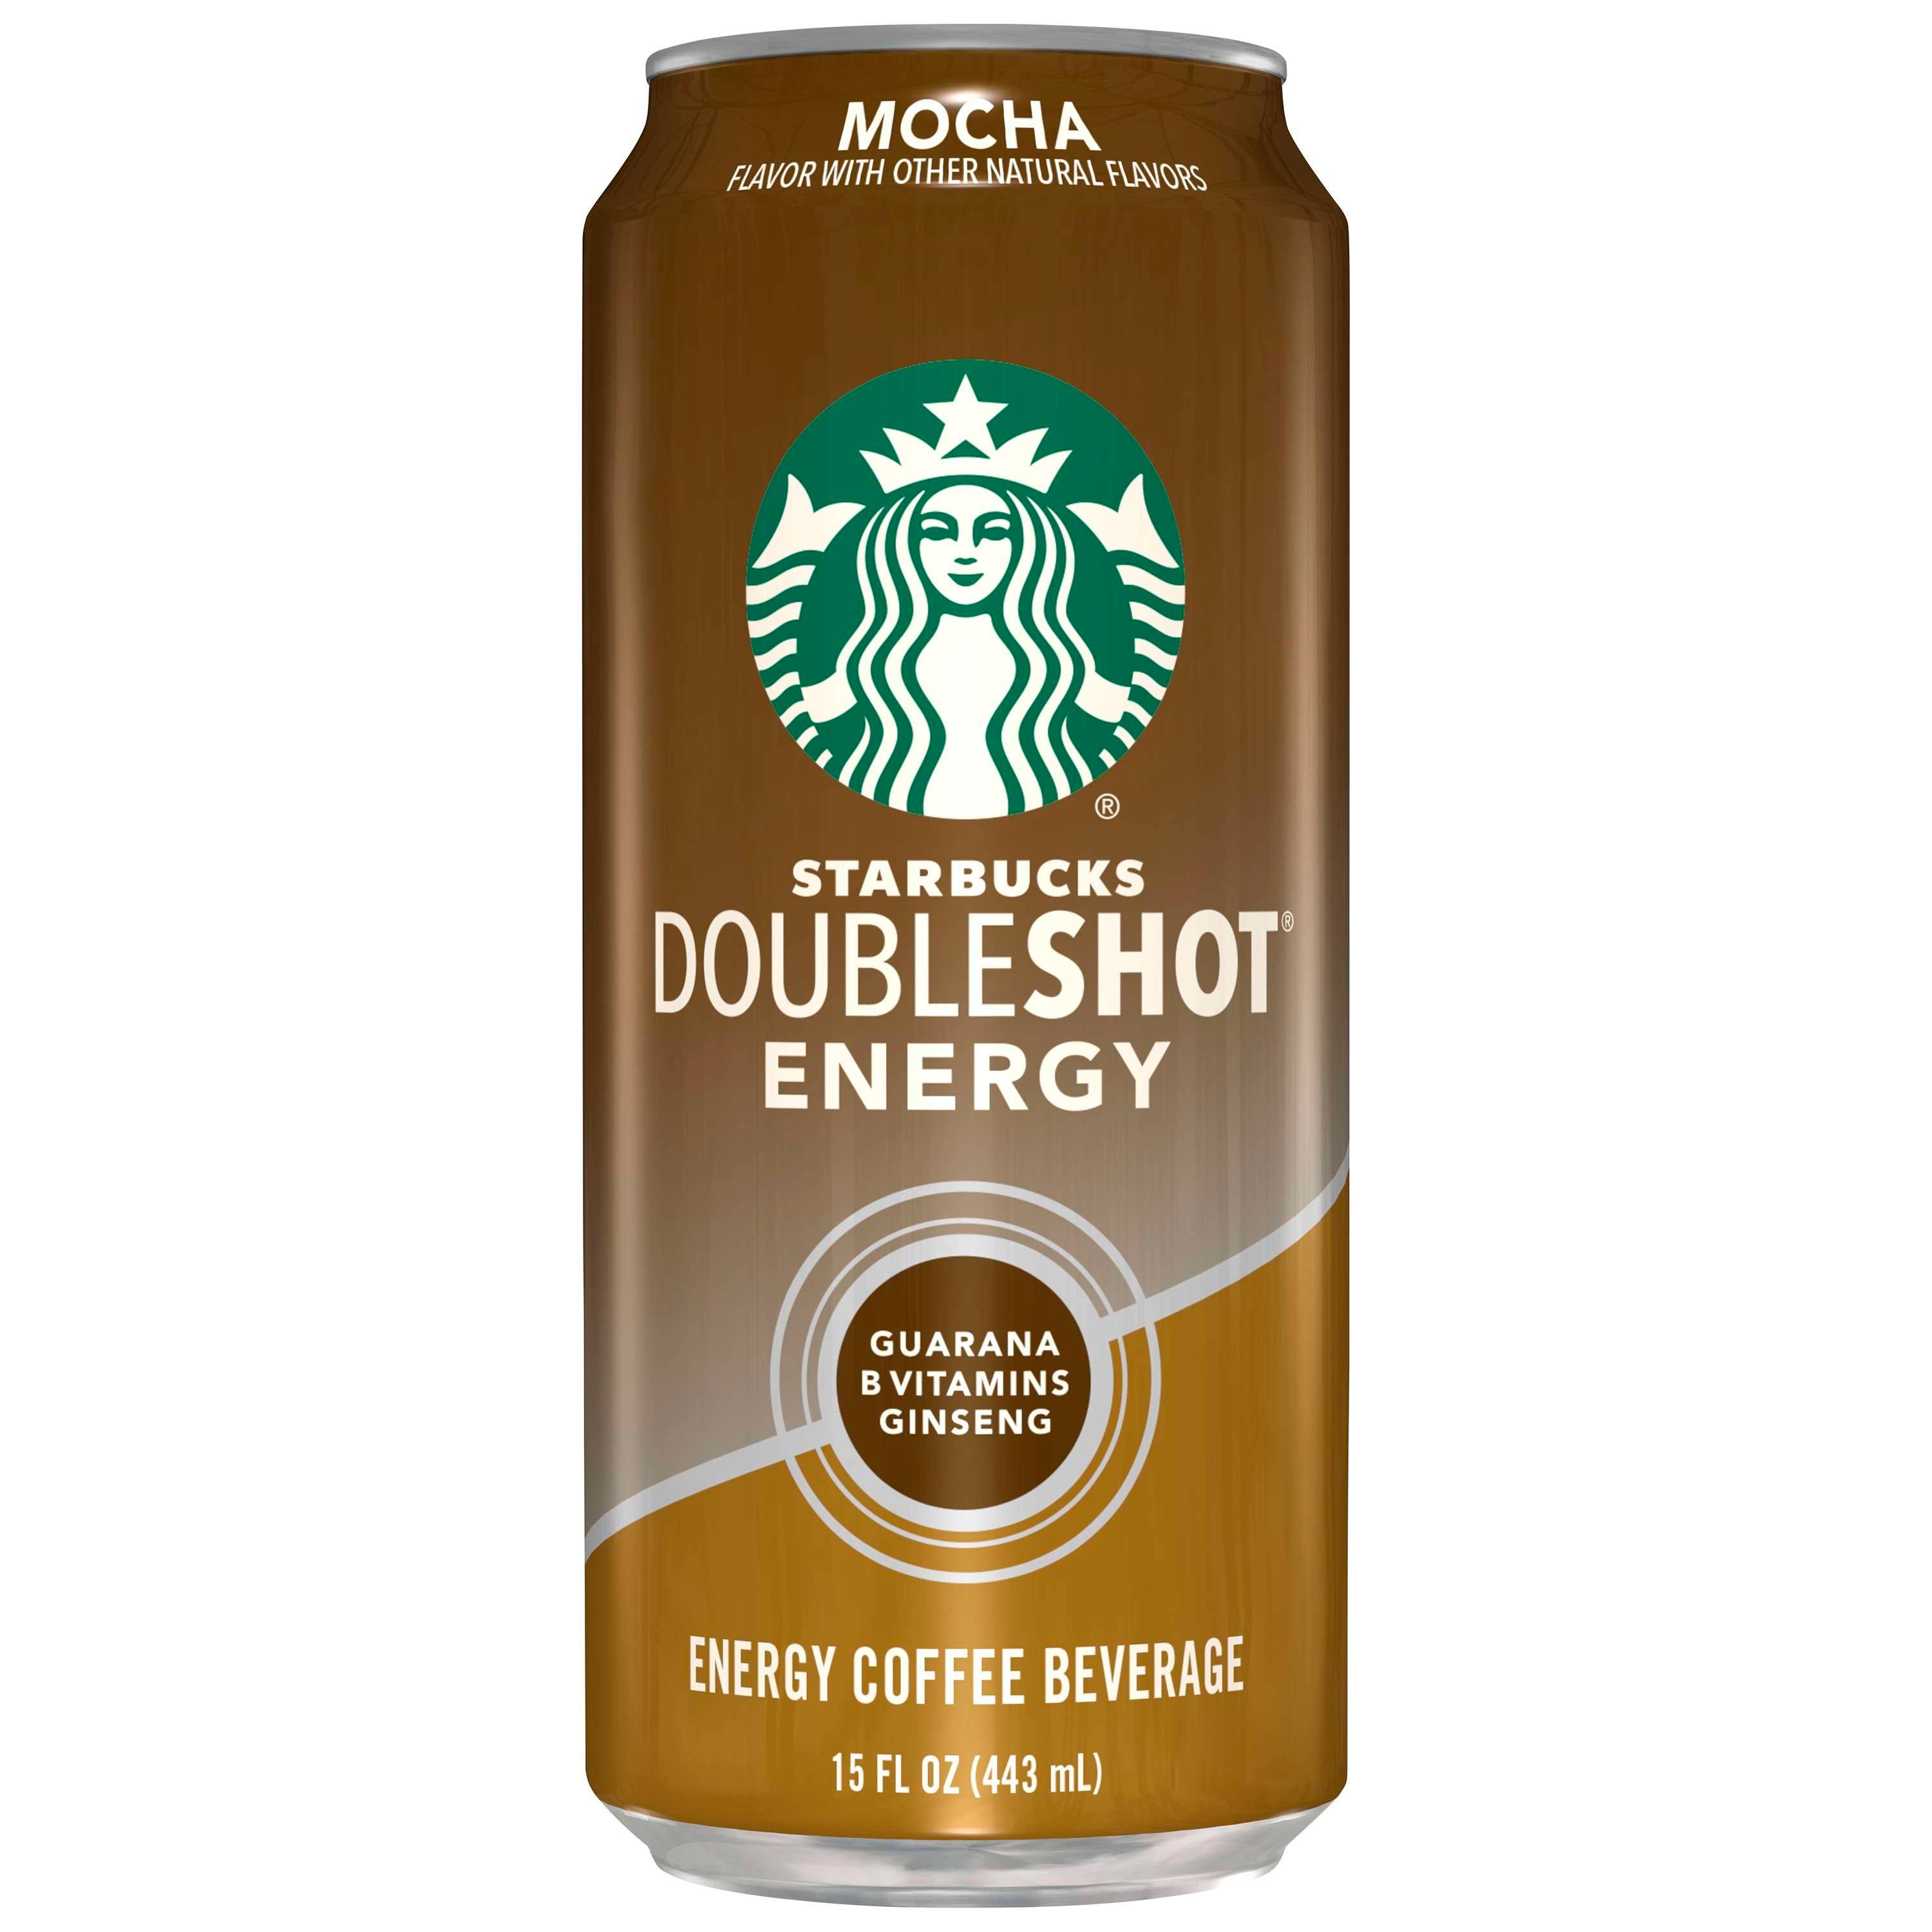 Starbucks Doubleshot Energy Coffee Beverage - Mocha, 443ml